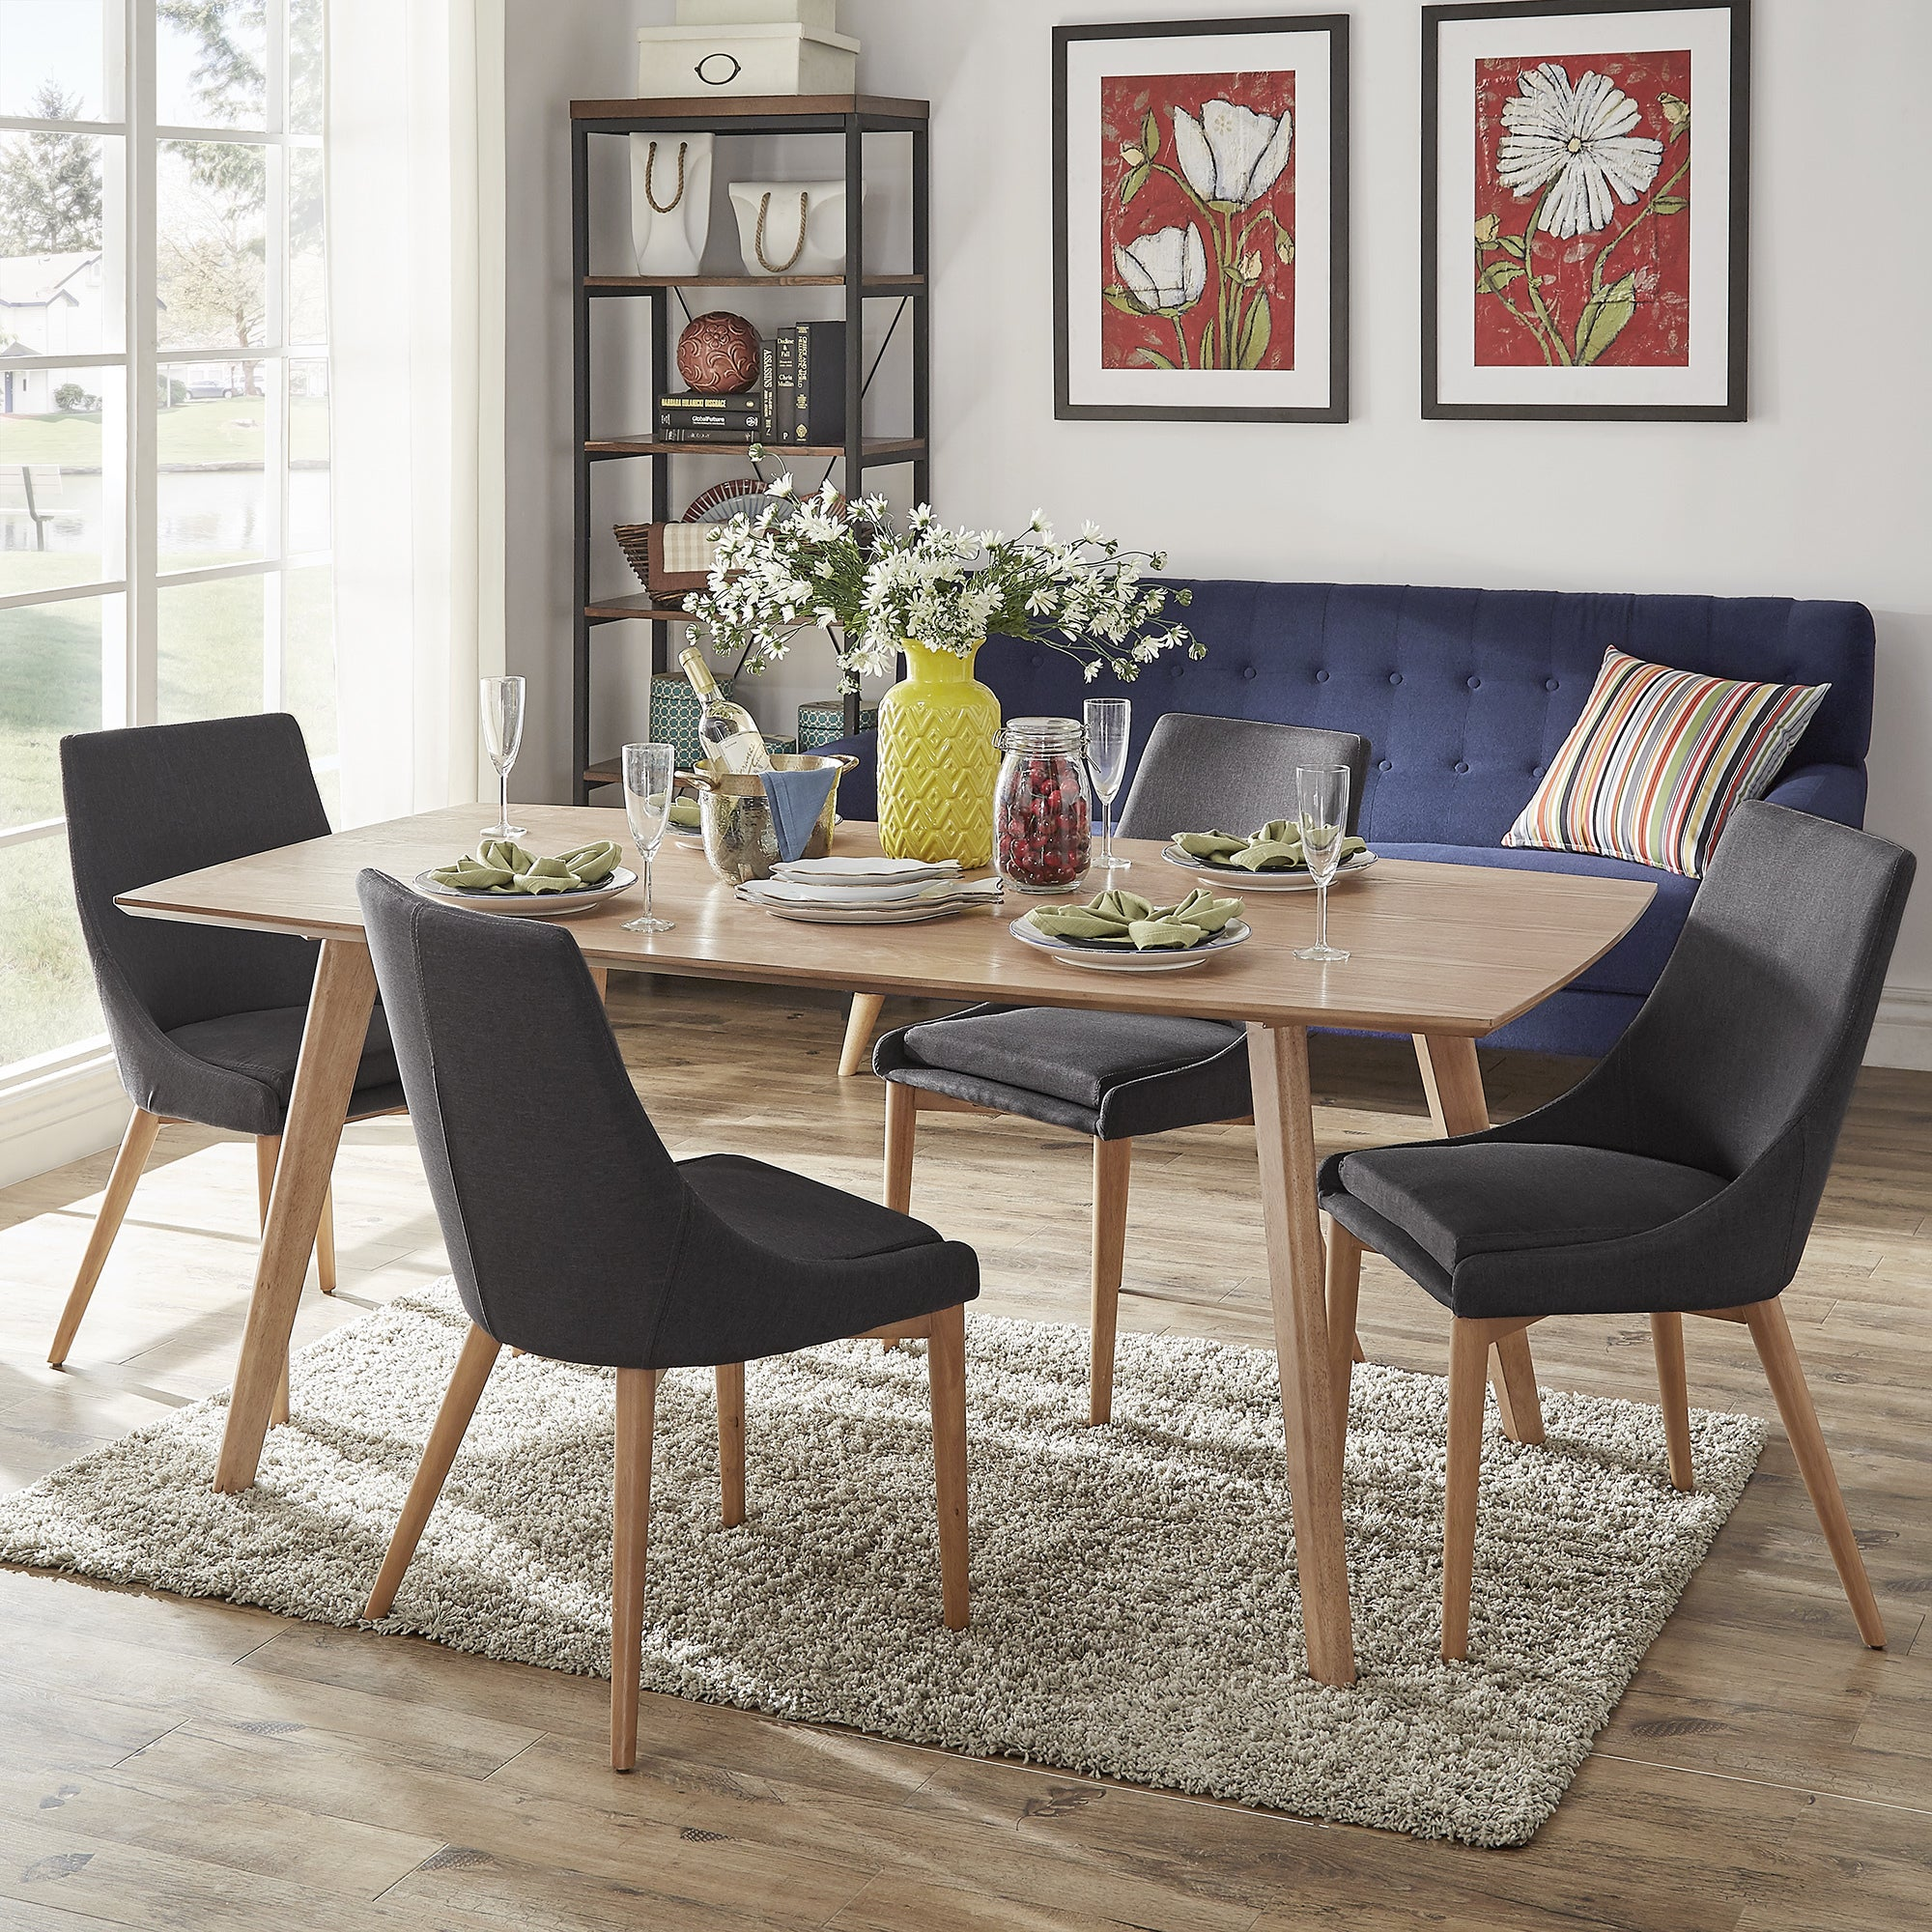 danish style dining table and chairs